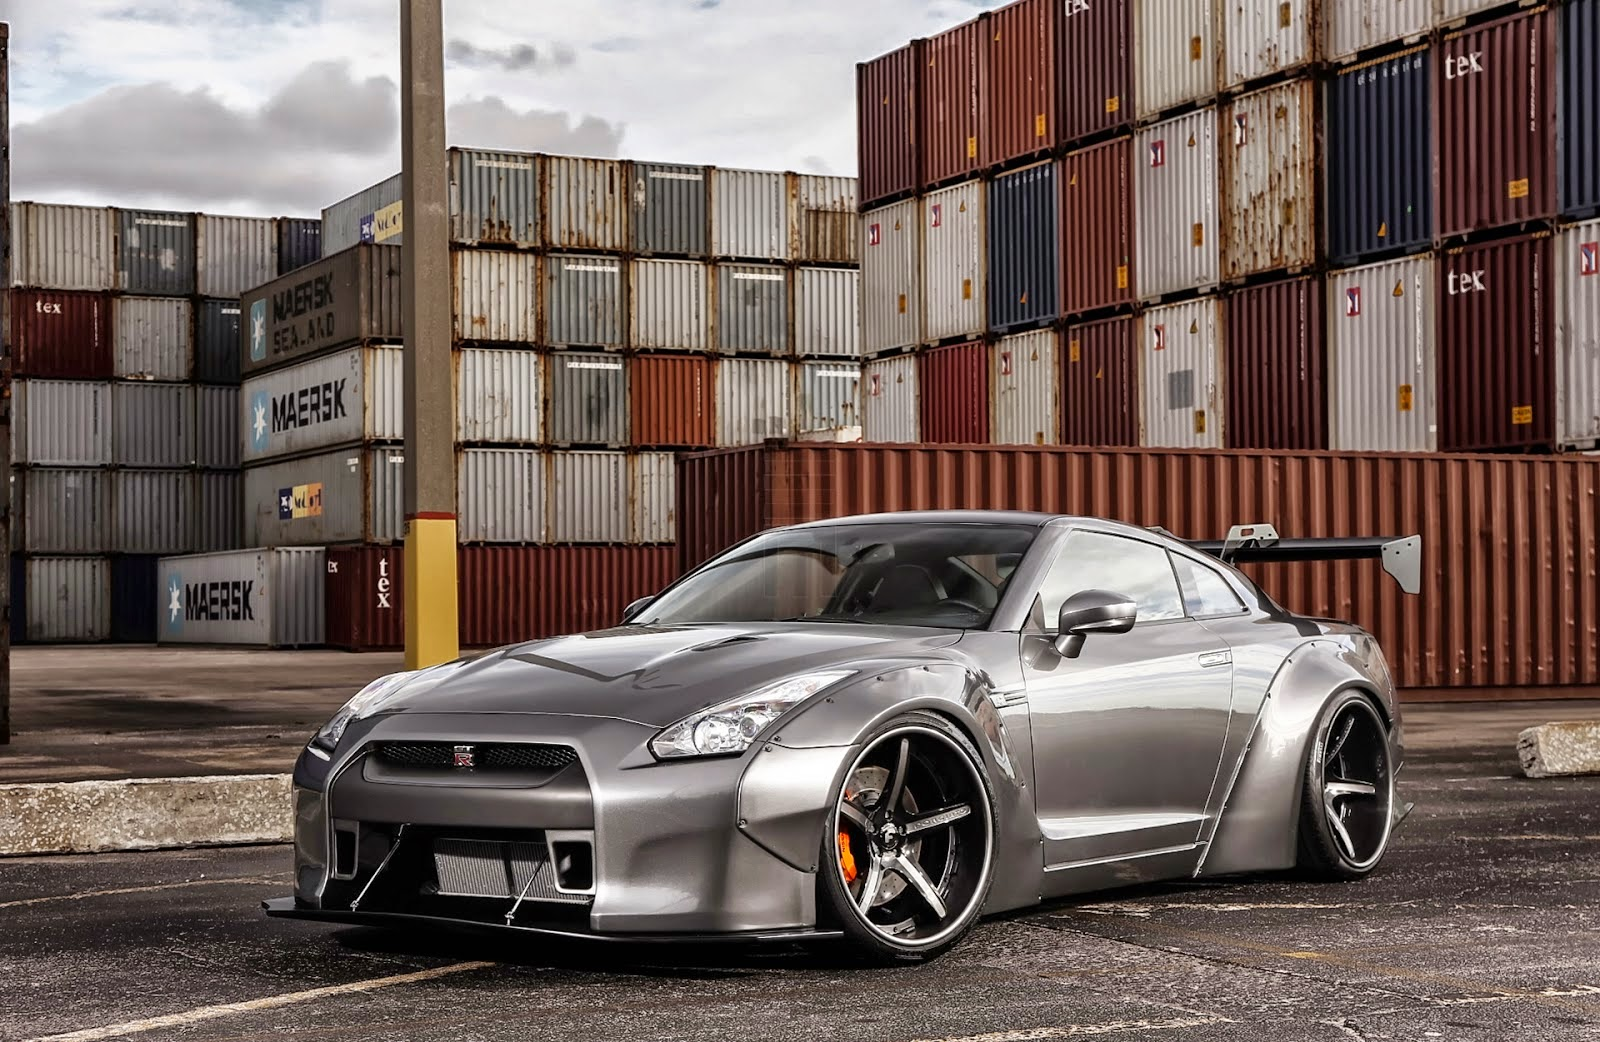 one by news exclusive motoring nissan gt r black edition liberty walk wide body kit on forgiato. Black Bedroom Furniture Sets. Home Design Ideas